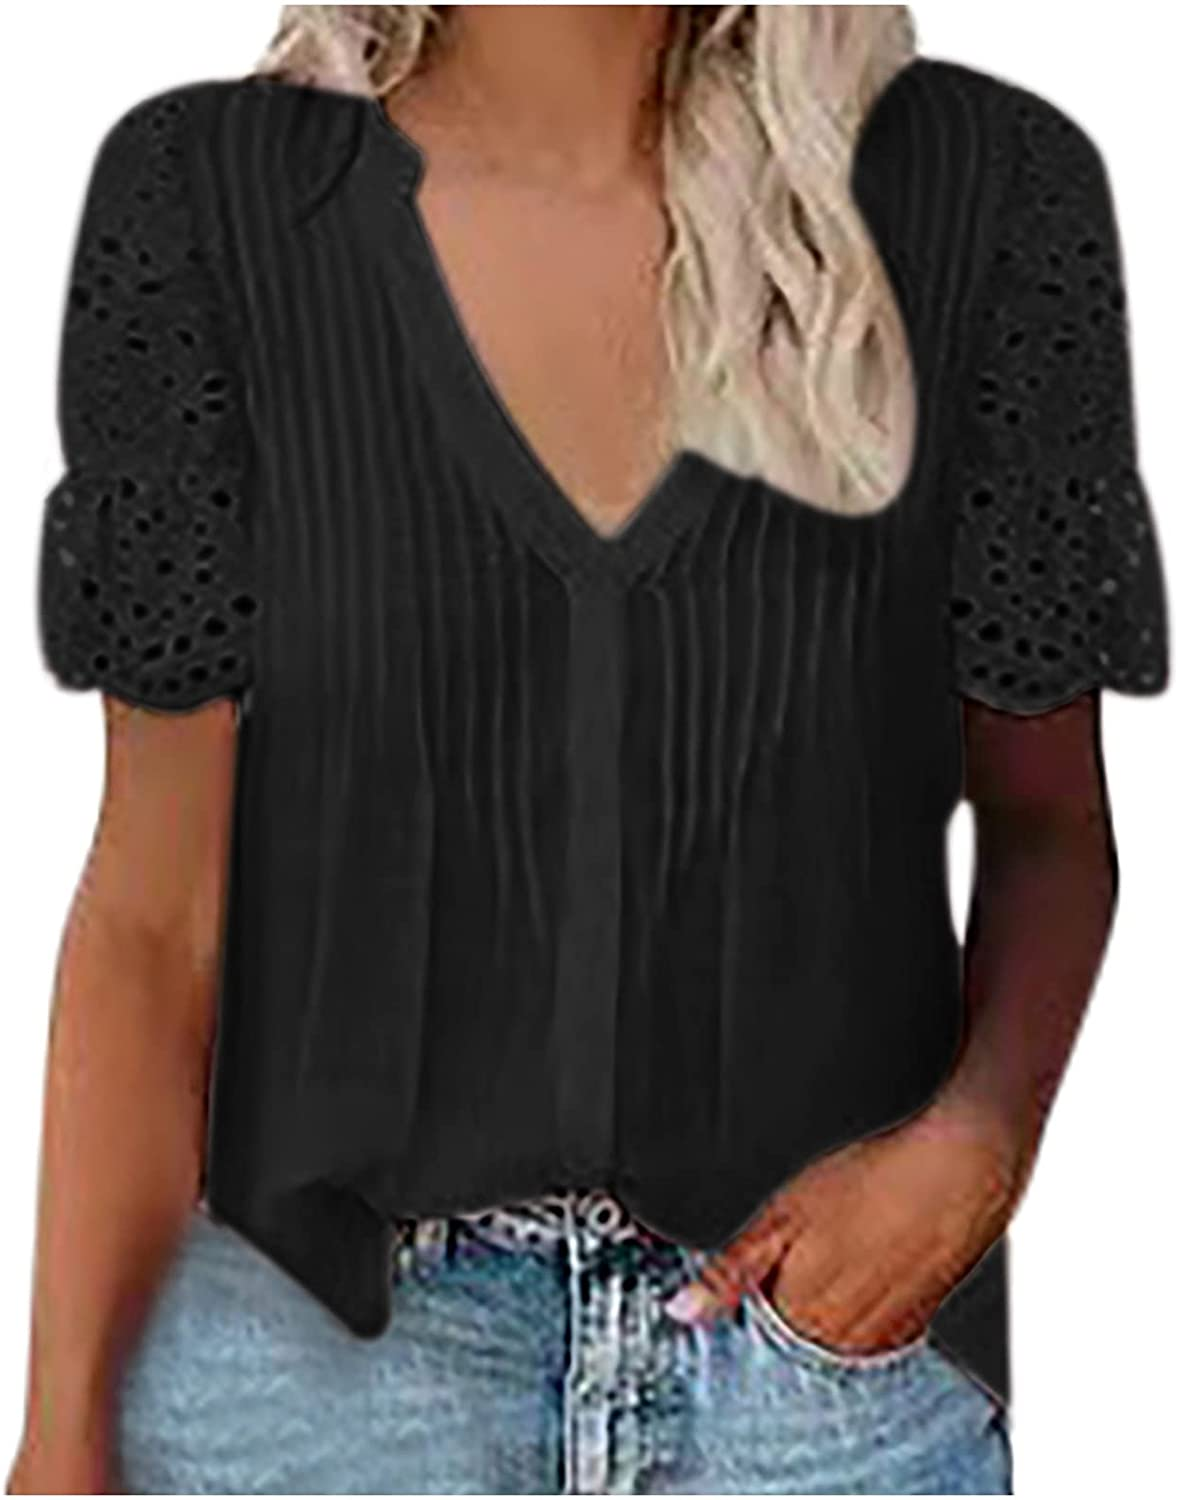 Blouses for Women Lace Crochet Short Sleeve Tops Summer Comfy Breathable Basic Tunic Button Down Elegant Shirt